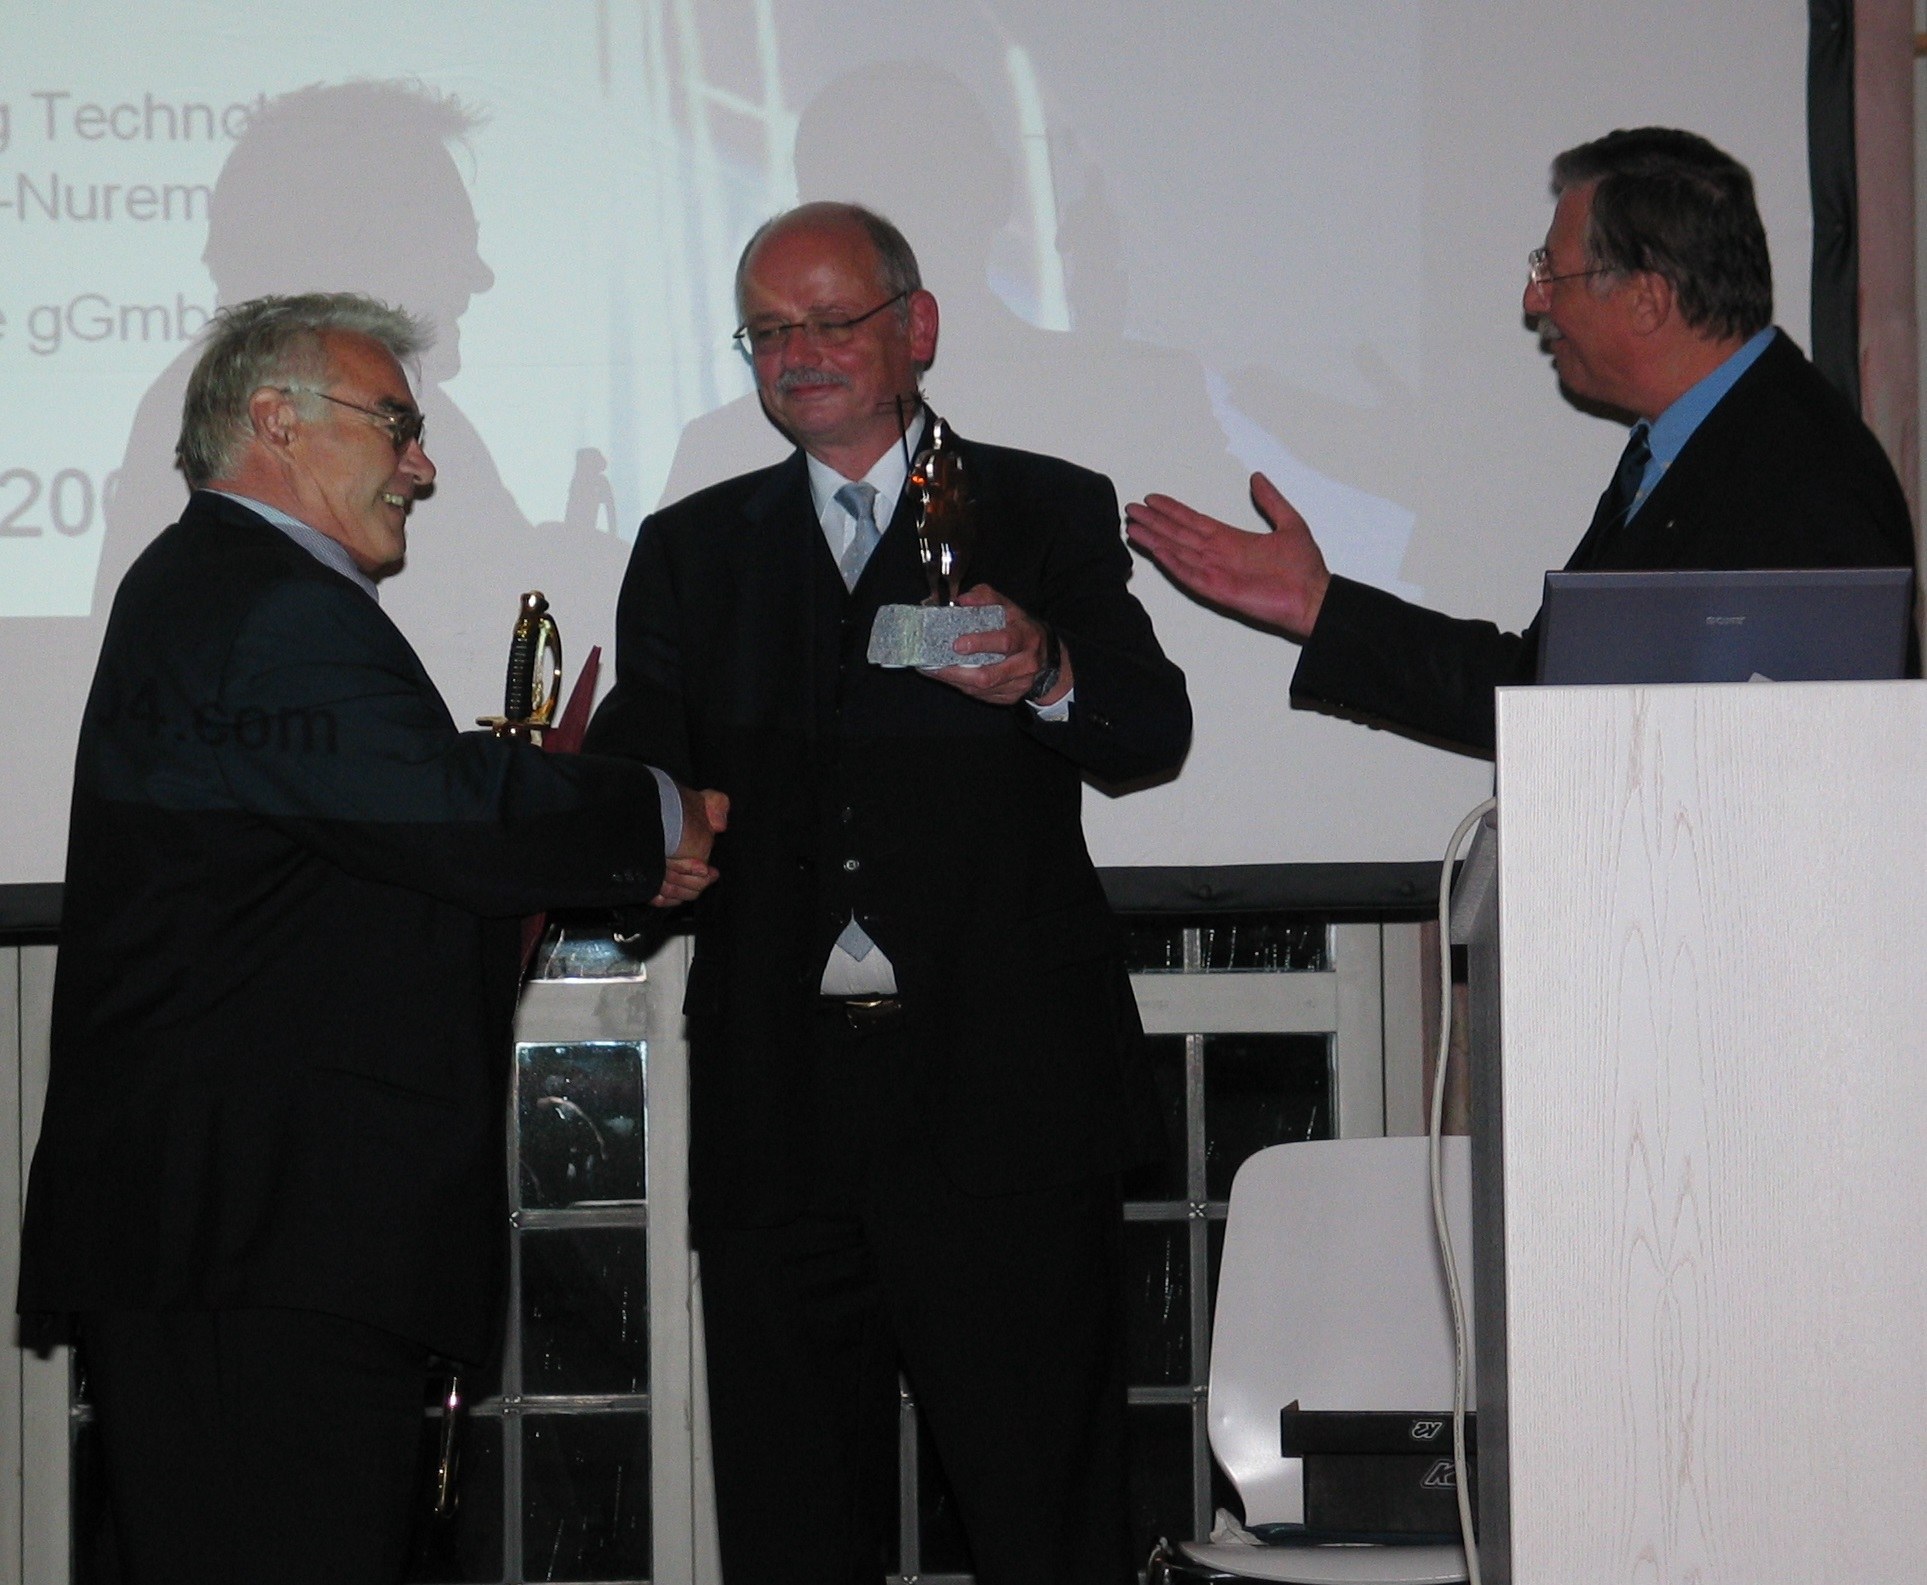 Prof. Jüptner and Prof. Geiger hand over the sword and trophy of the Knights of Laser Technology to Prof. Schuöker at LANE 2004's Conference Banquet (from right to left)